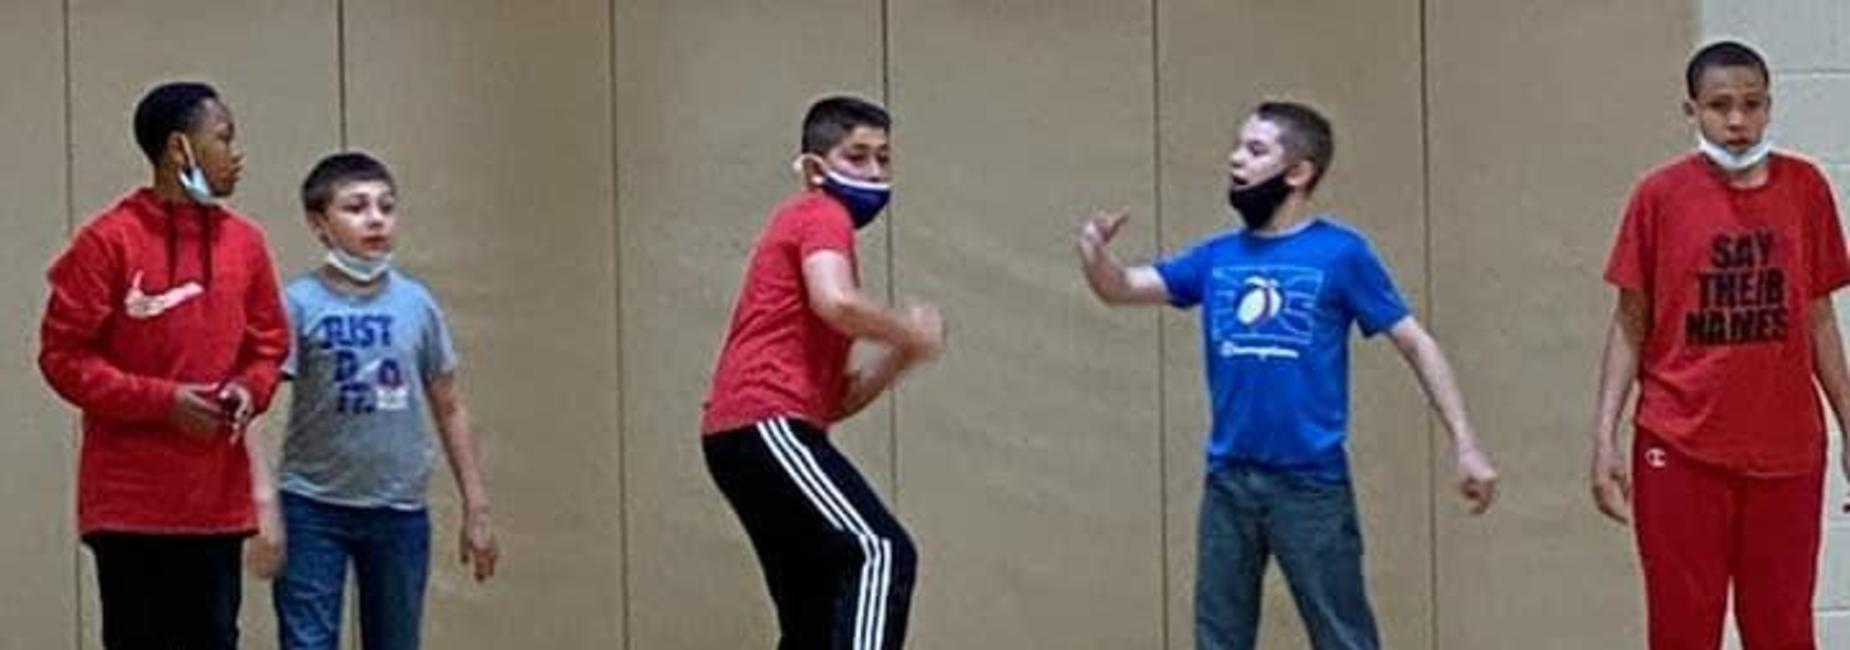 Test students playing Spider Ball